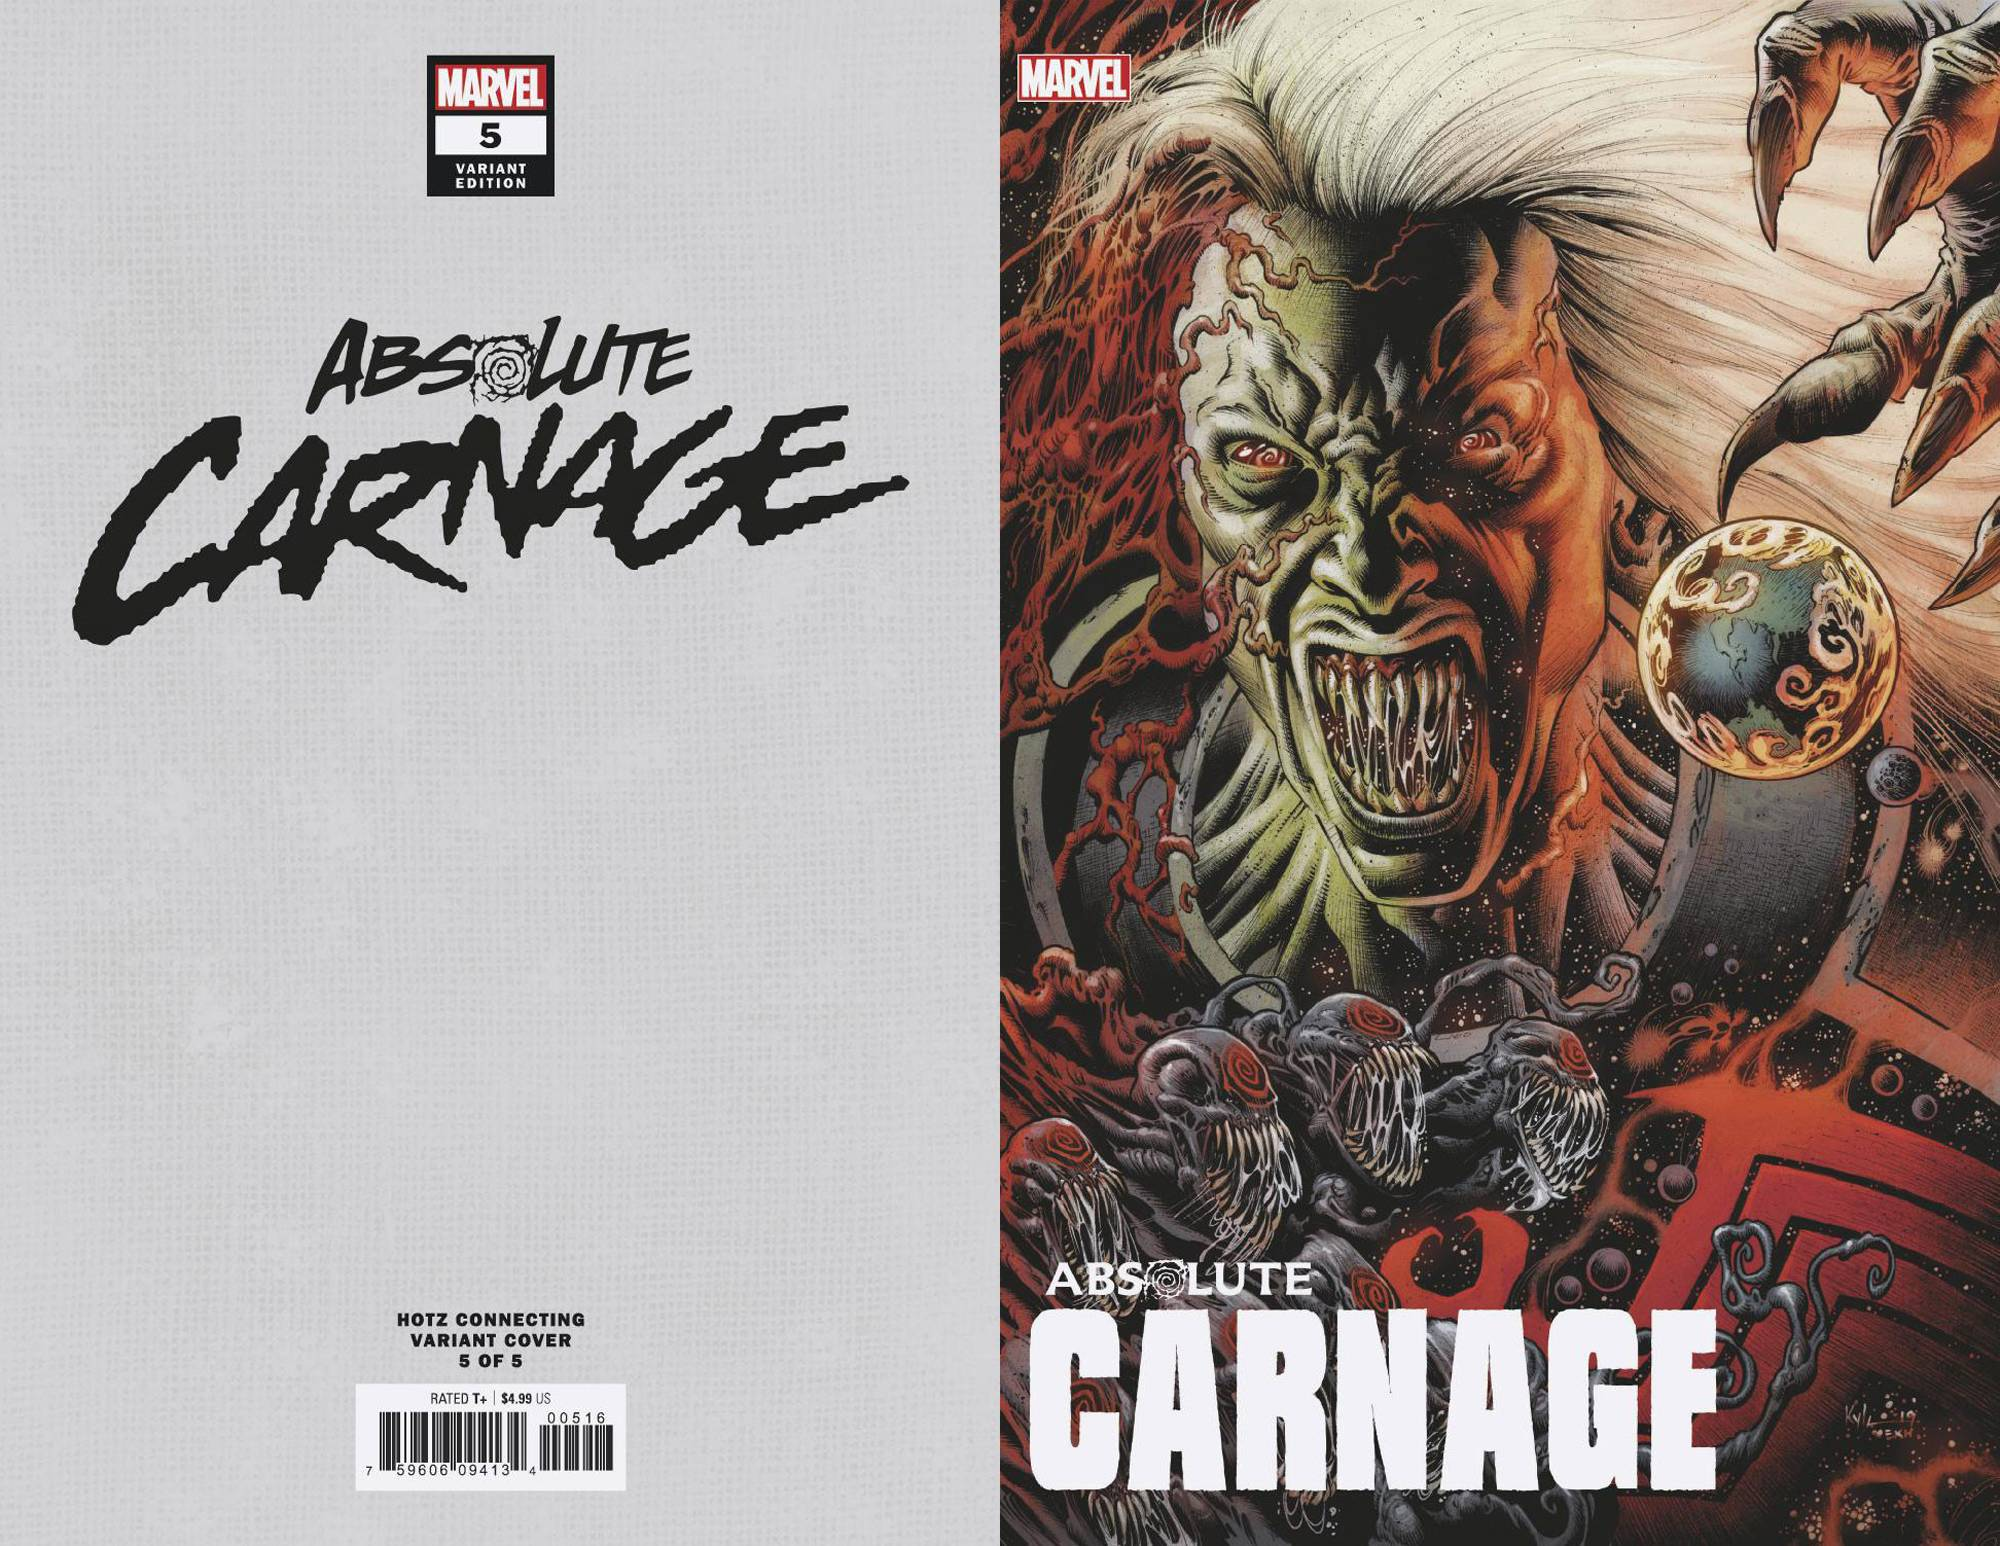 11/20/2019 ABSOLUTE CARNAGE #5 (OF 5) HOTZ CONNECTING VAR AC